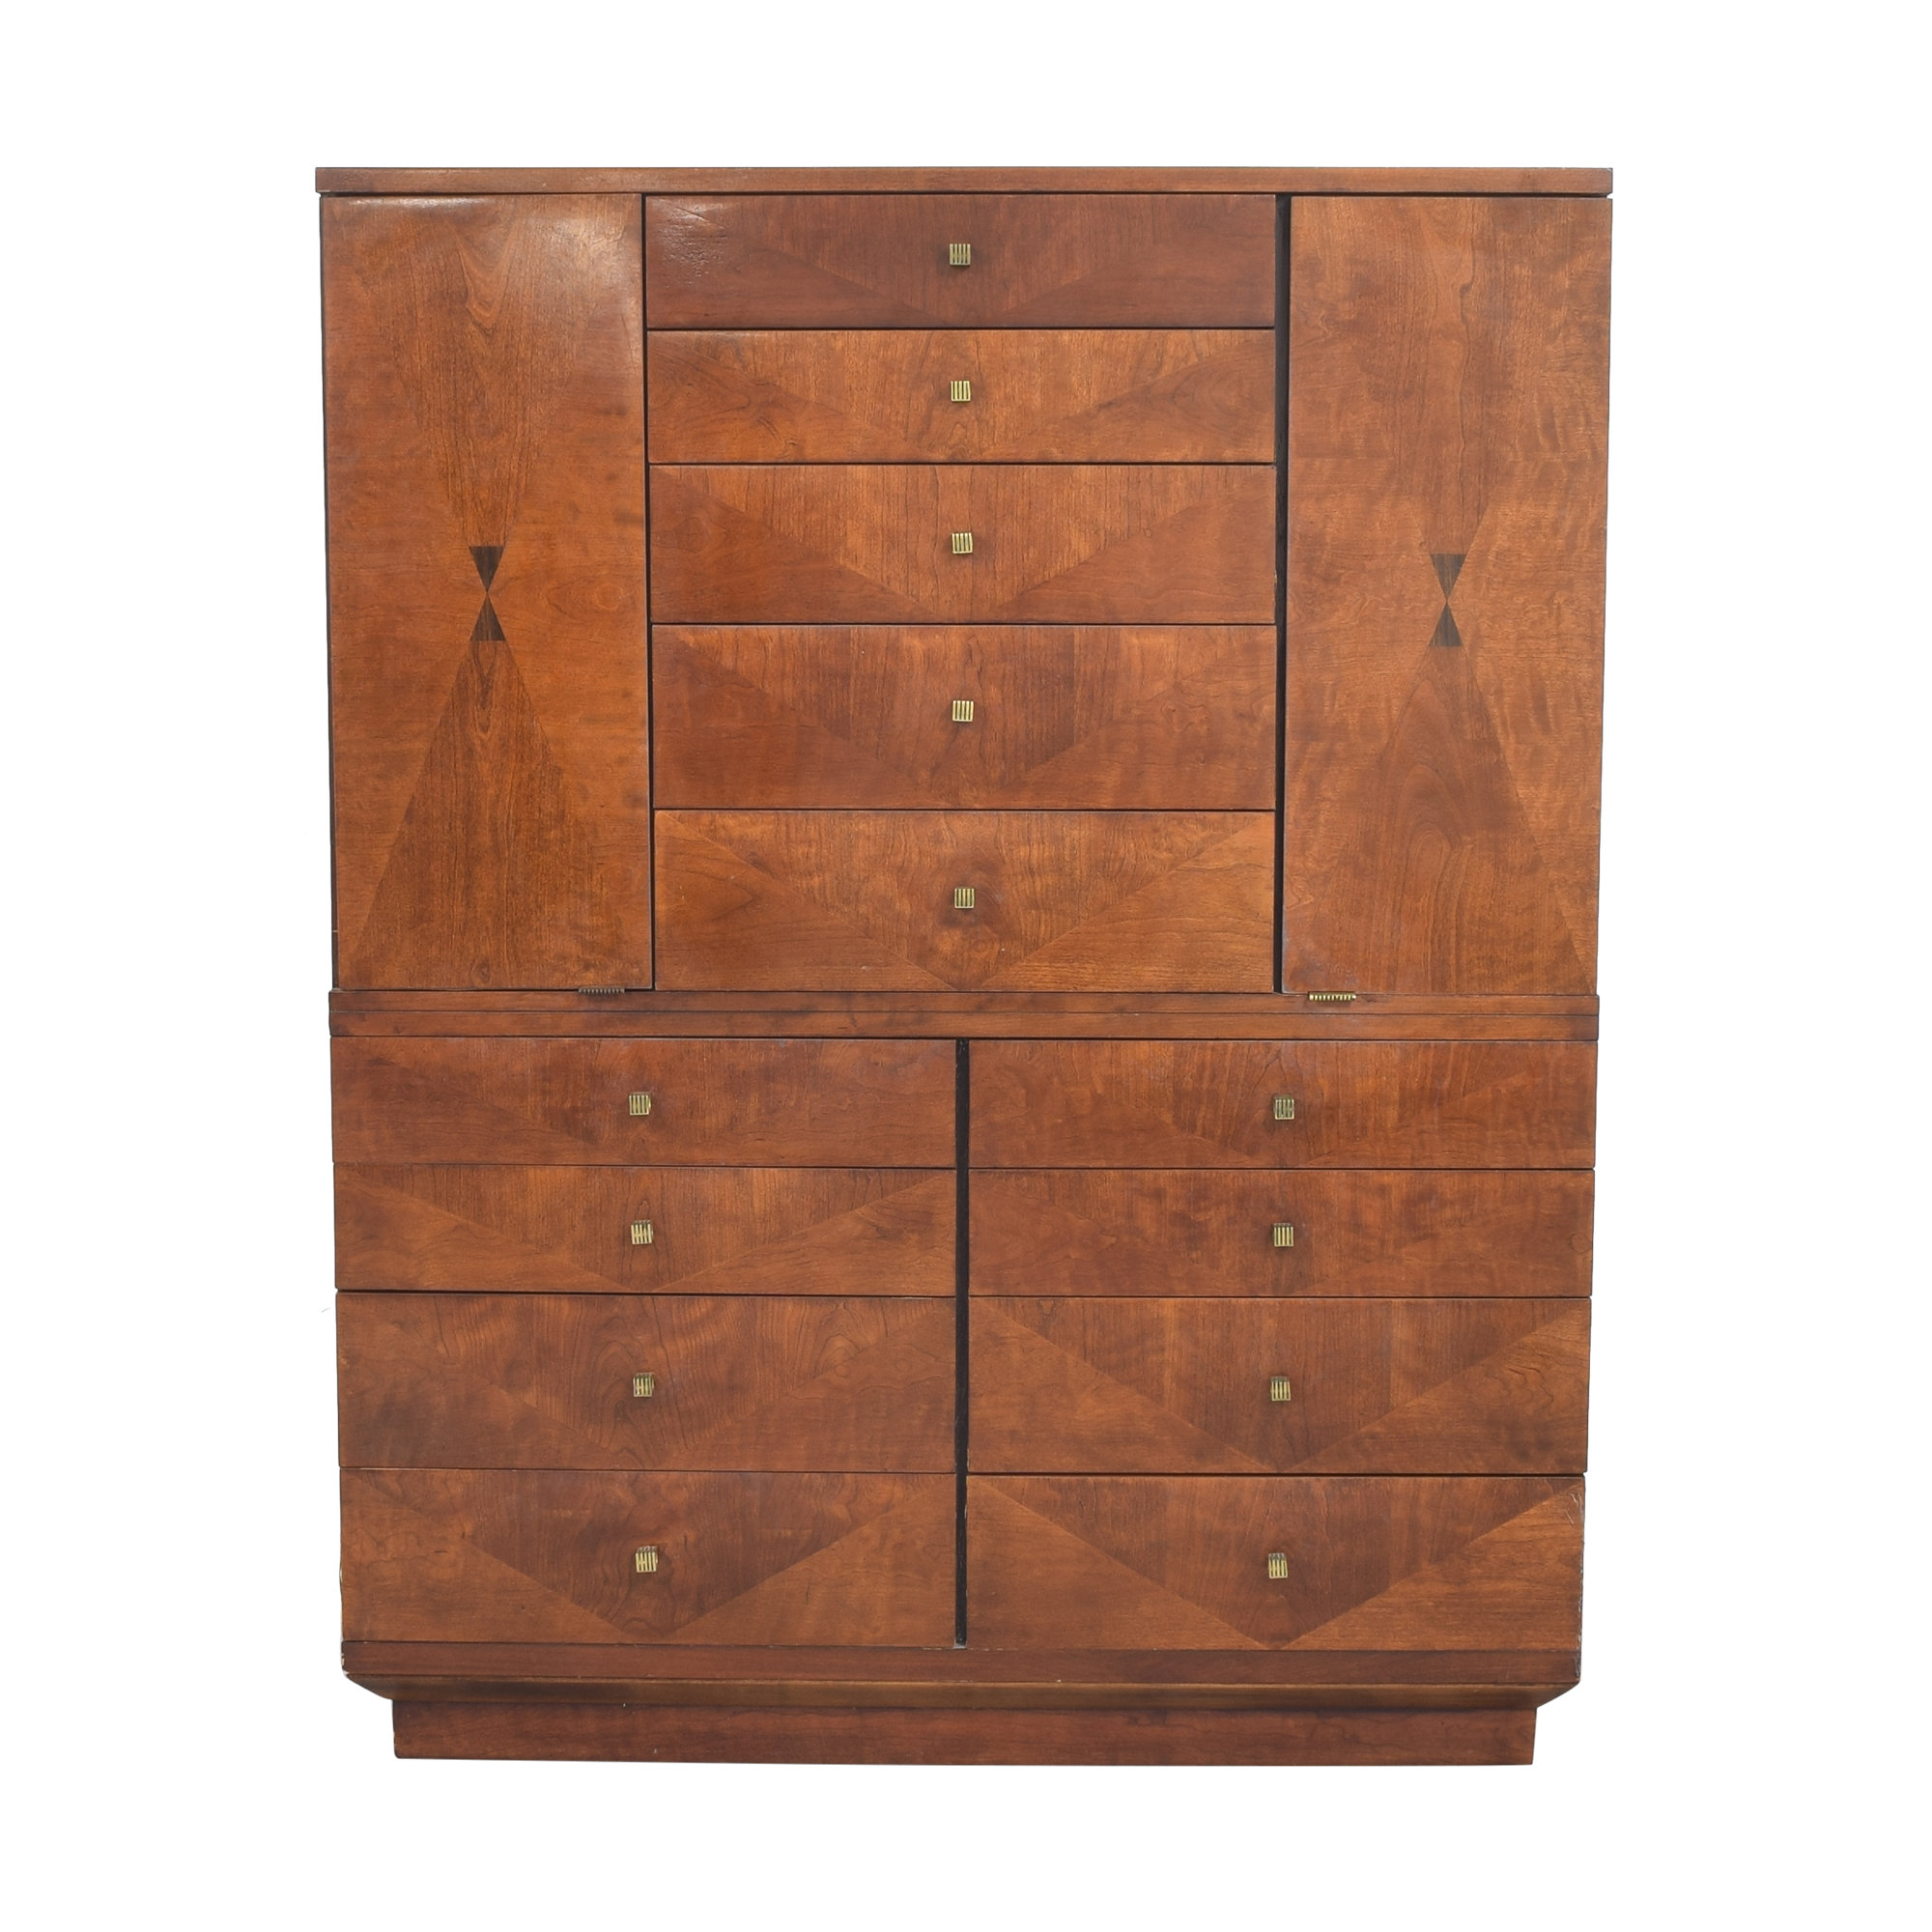 shop Henredon Furniture Hendredon Furniture Scene 4 Dresser online